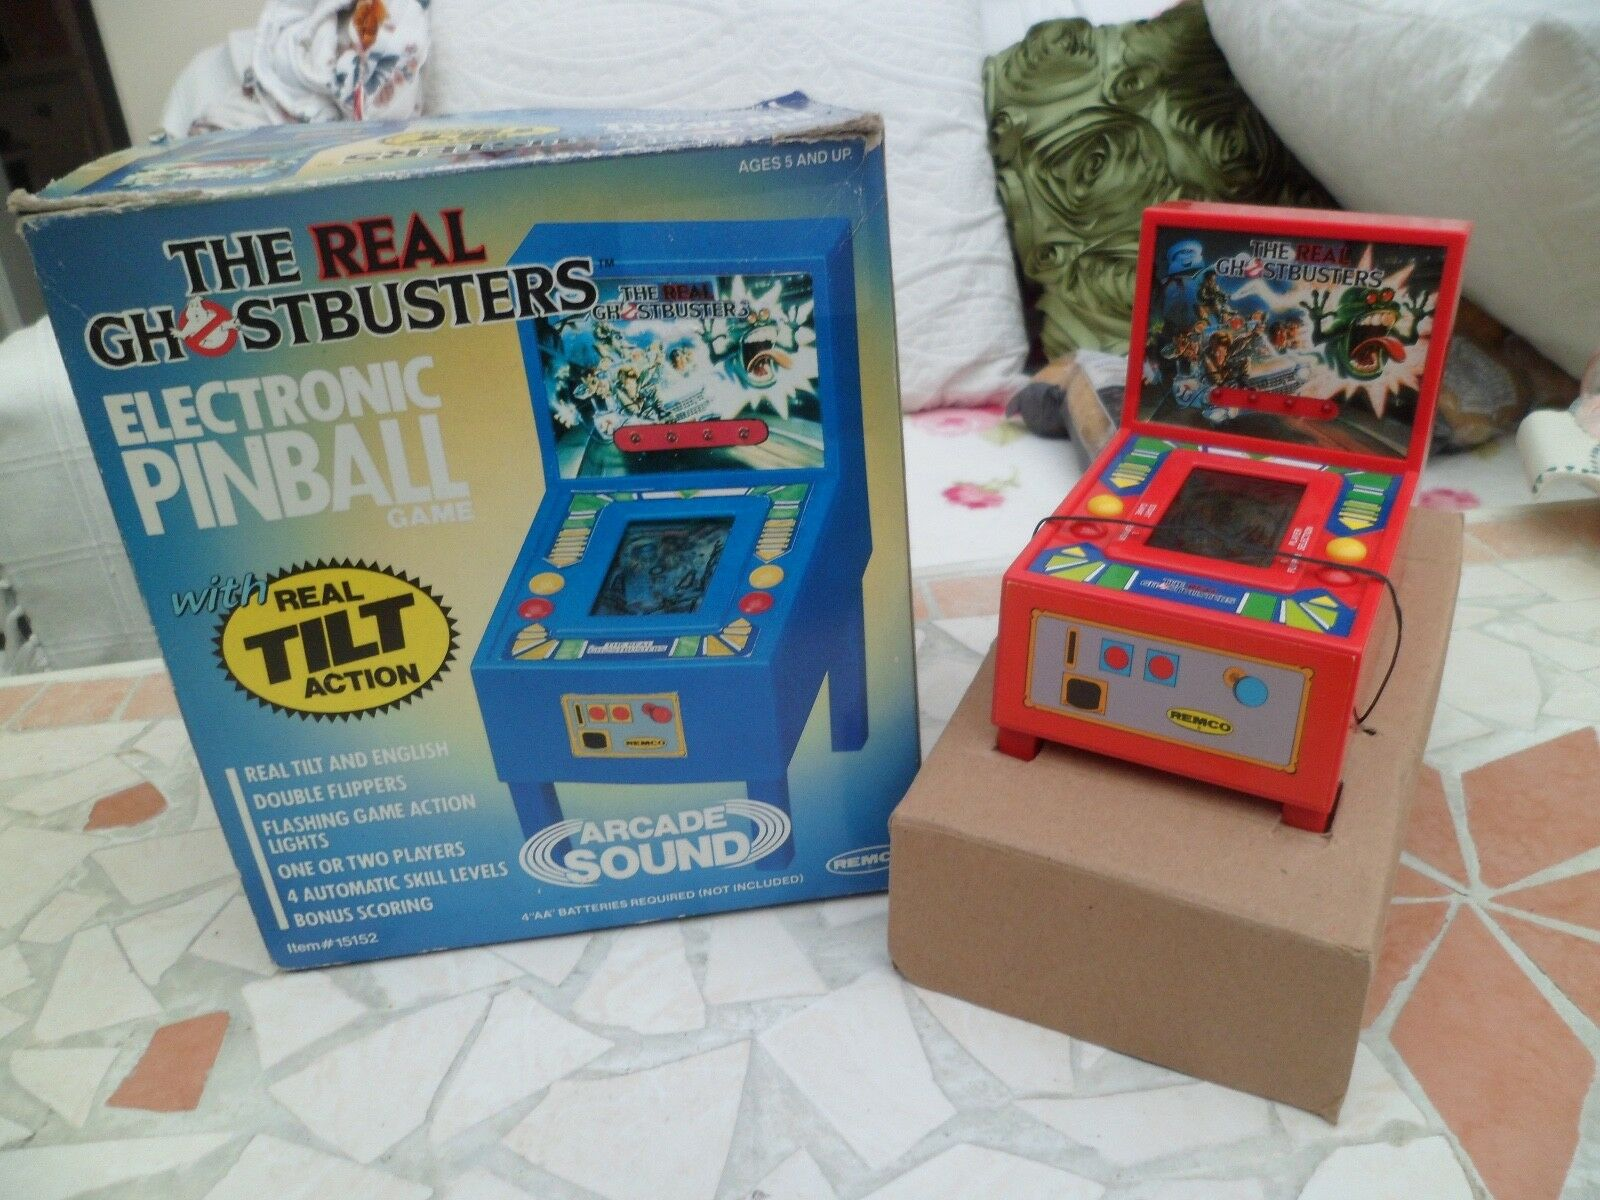 1989 The Real Ghostbusters  Electronic Pinball Game, boxed RARE,REMCO Arcade toy